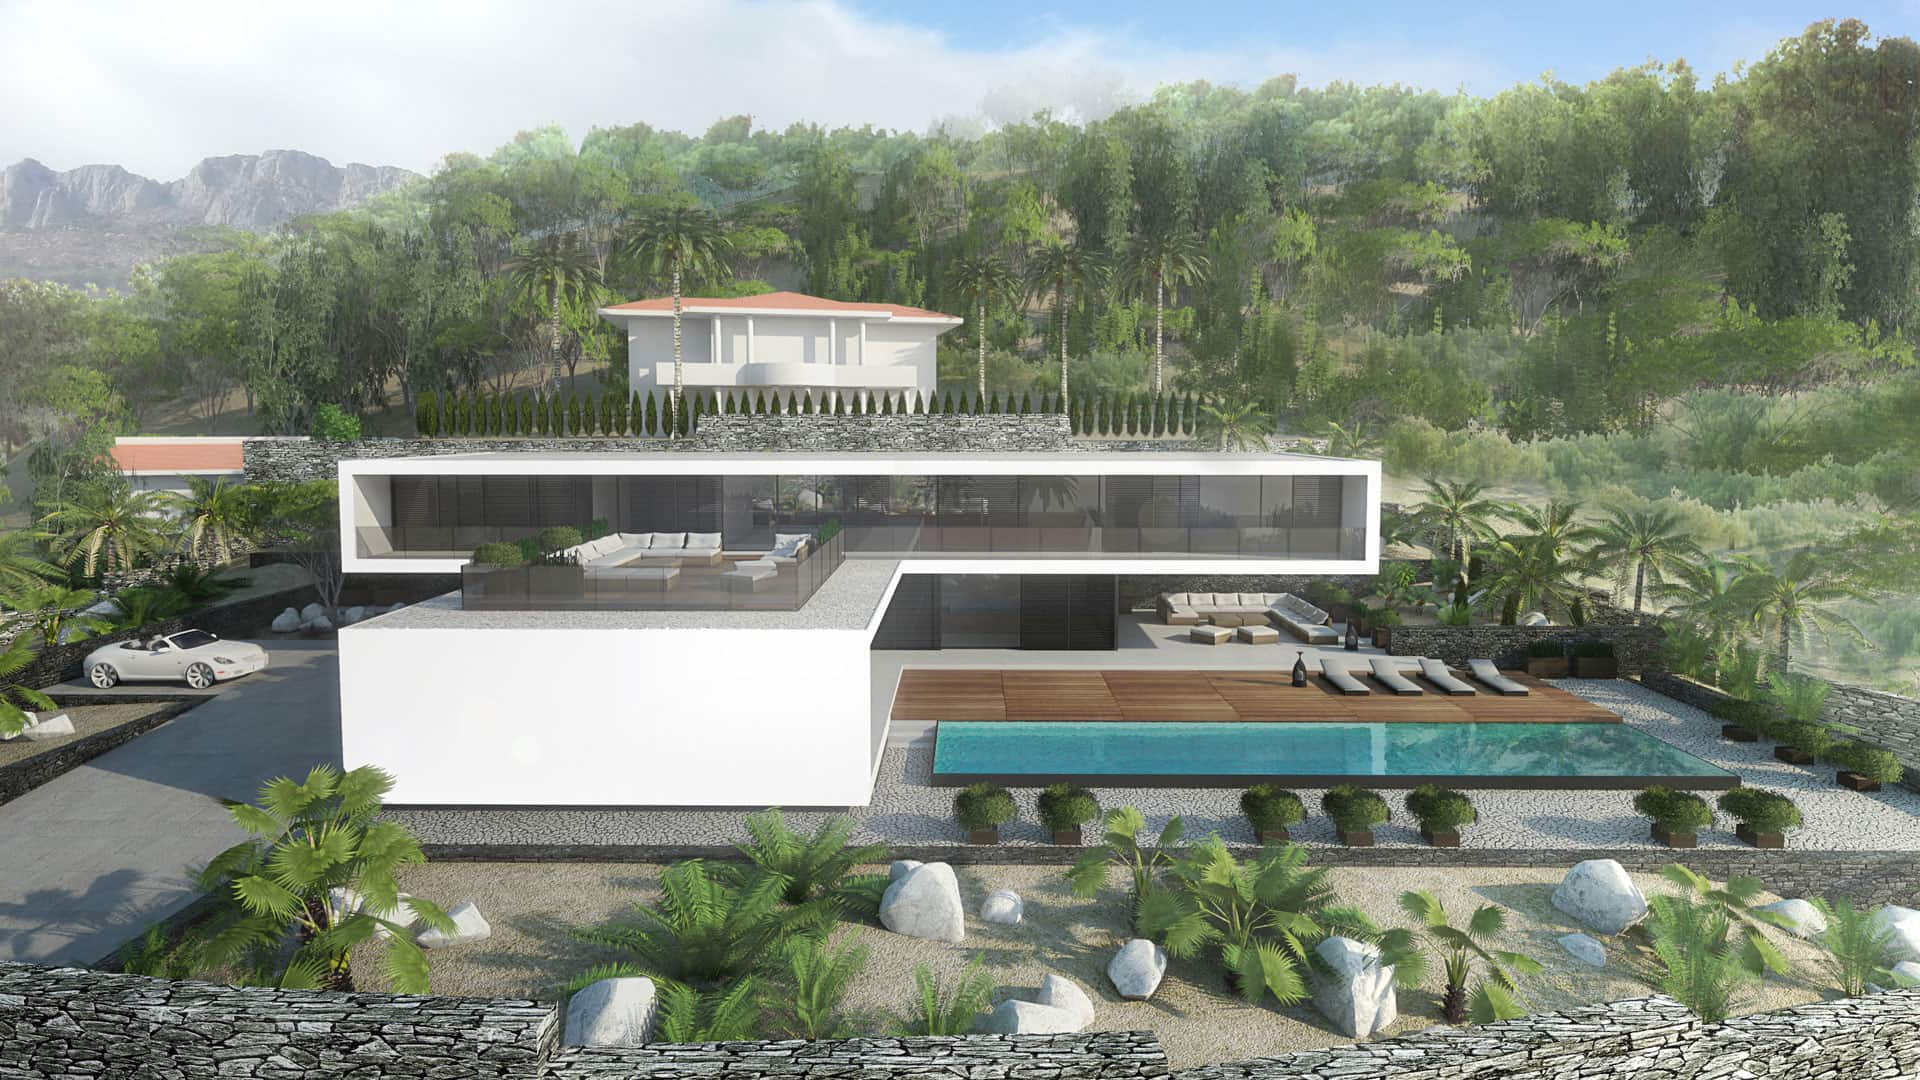 Modern Unexpected Concrete Flat Roof House Plans. Grandeur scale cottage of two-storey design